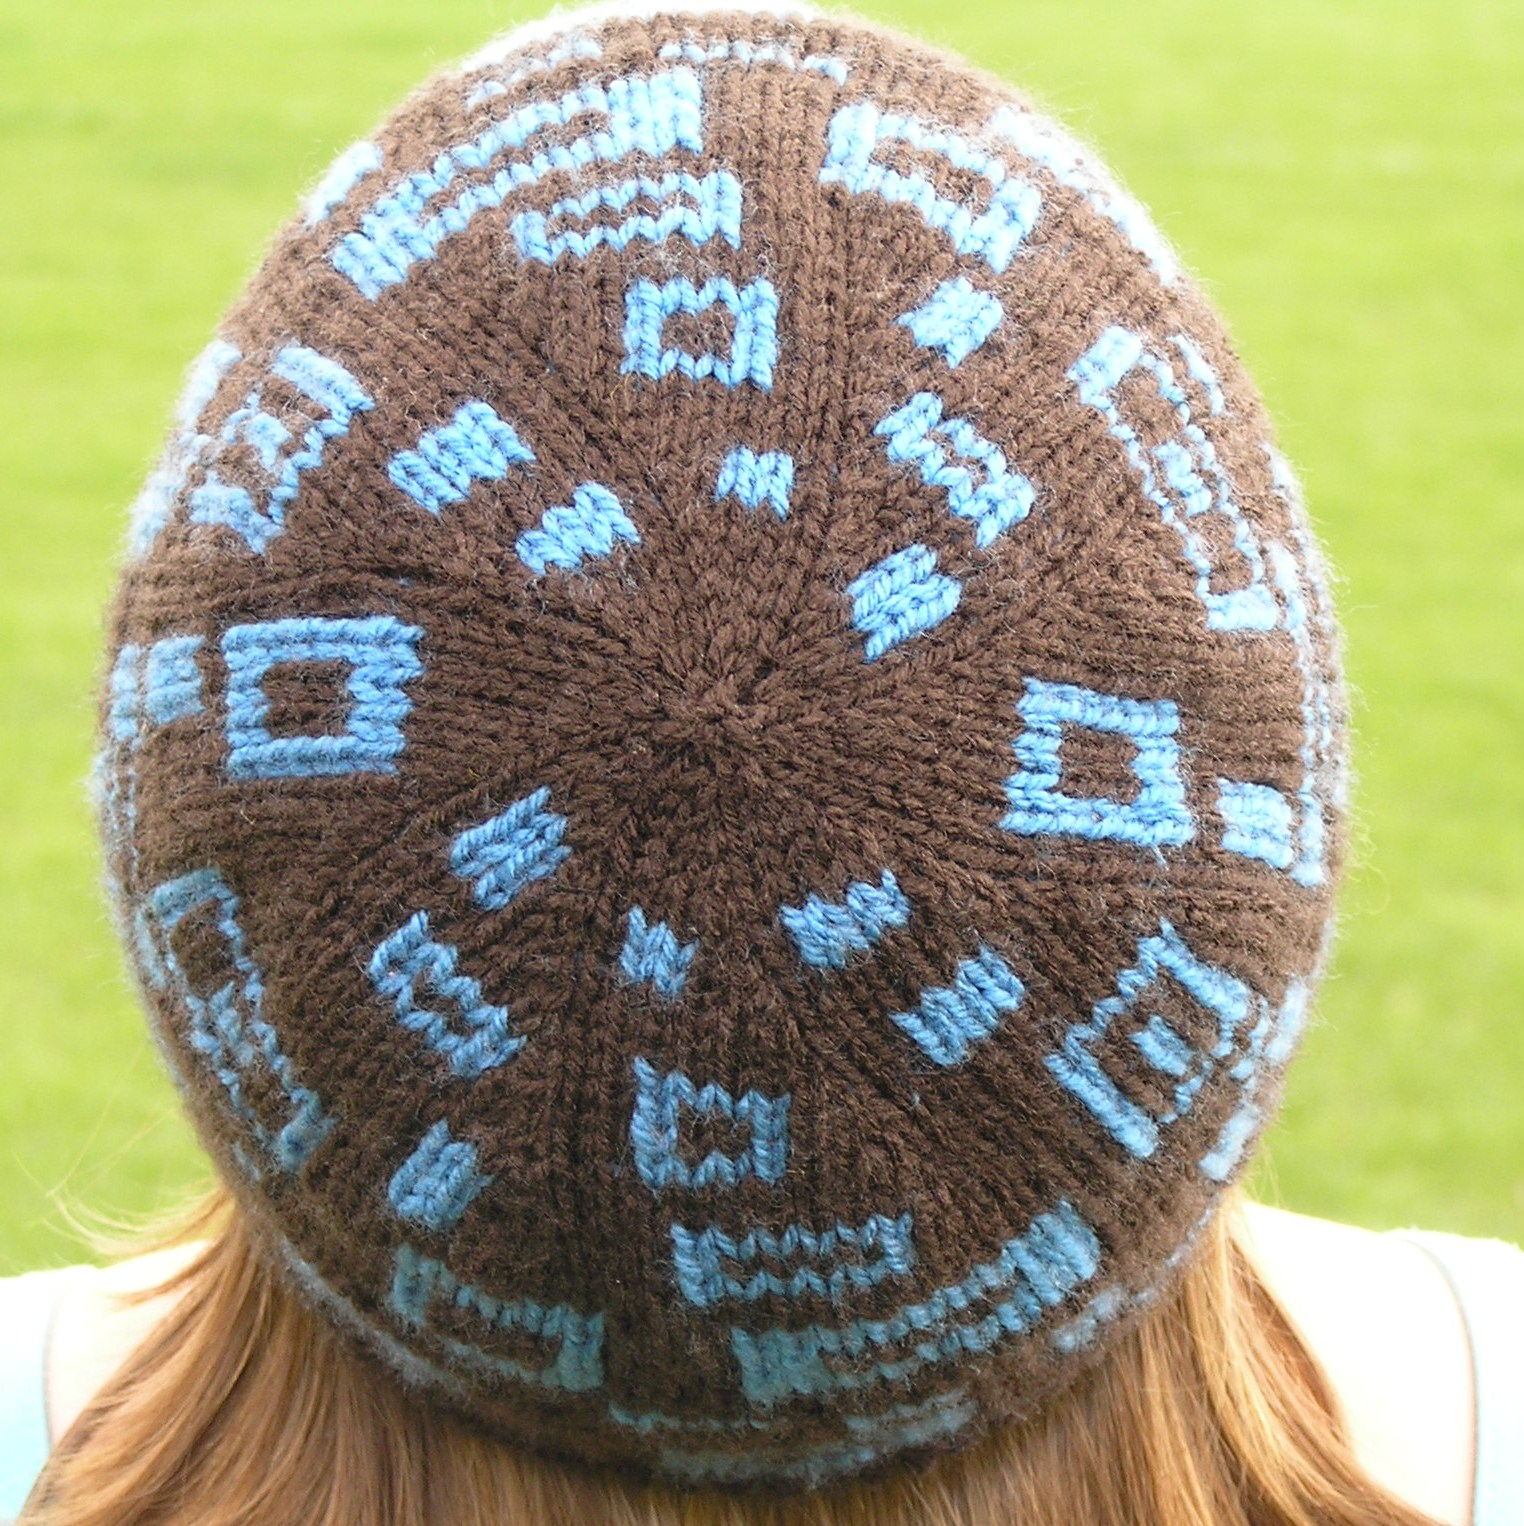 Hat Knitting Patterns : hat involves a technique called double knitting basically knitting ...